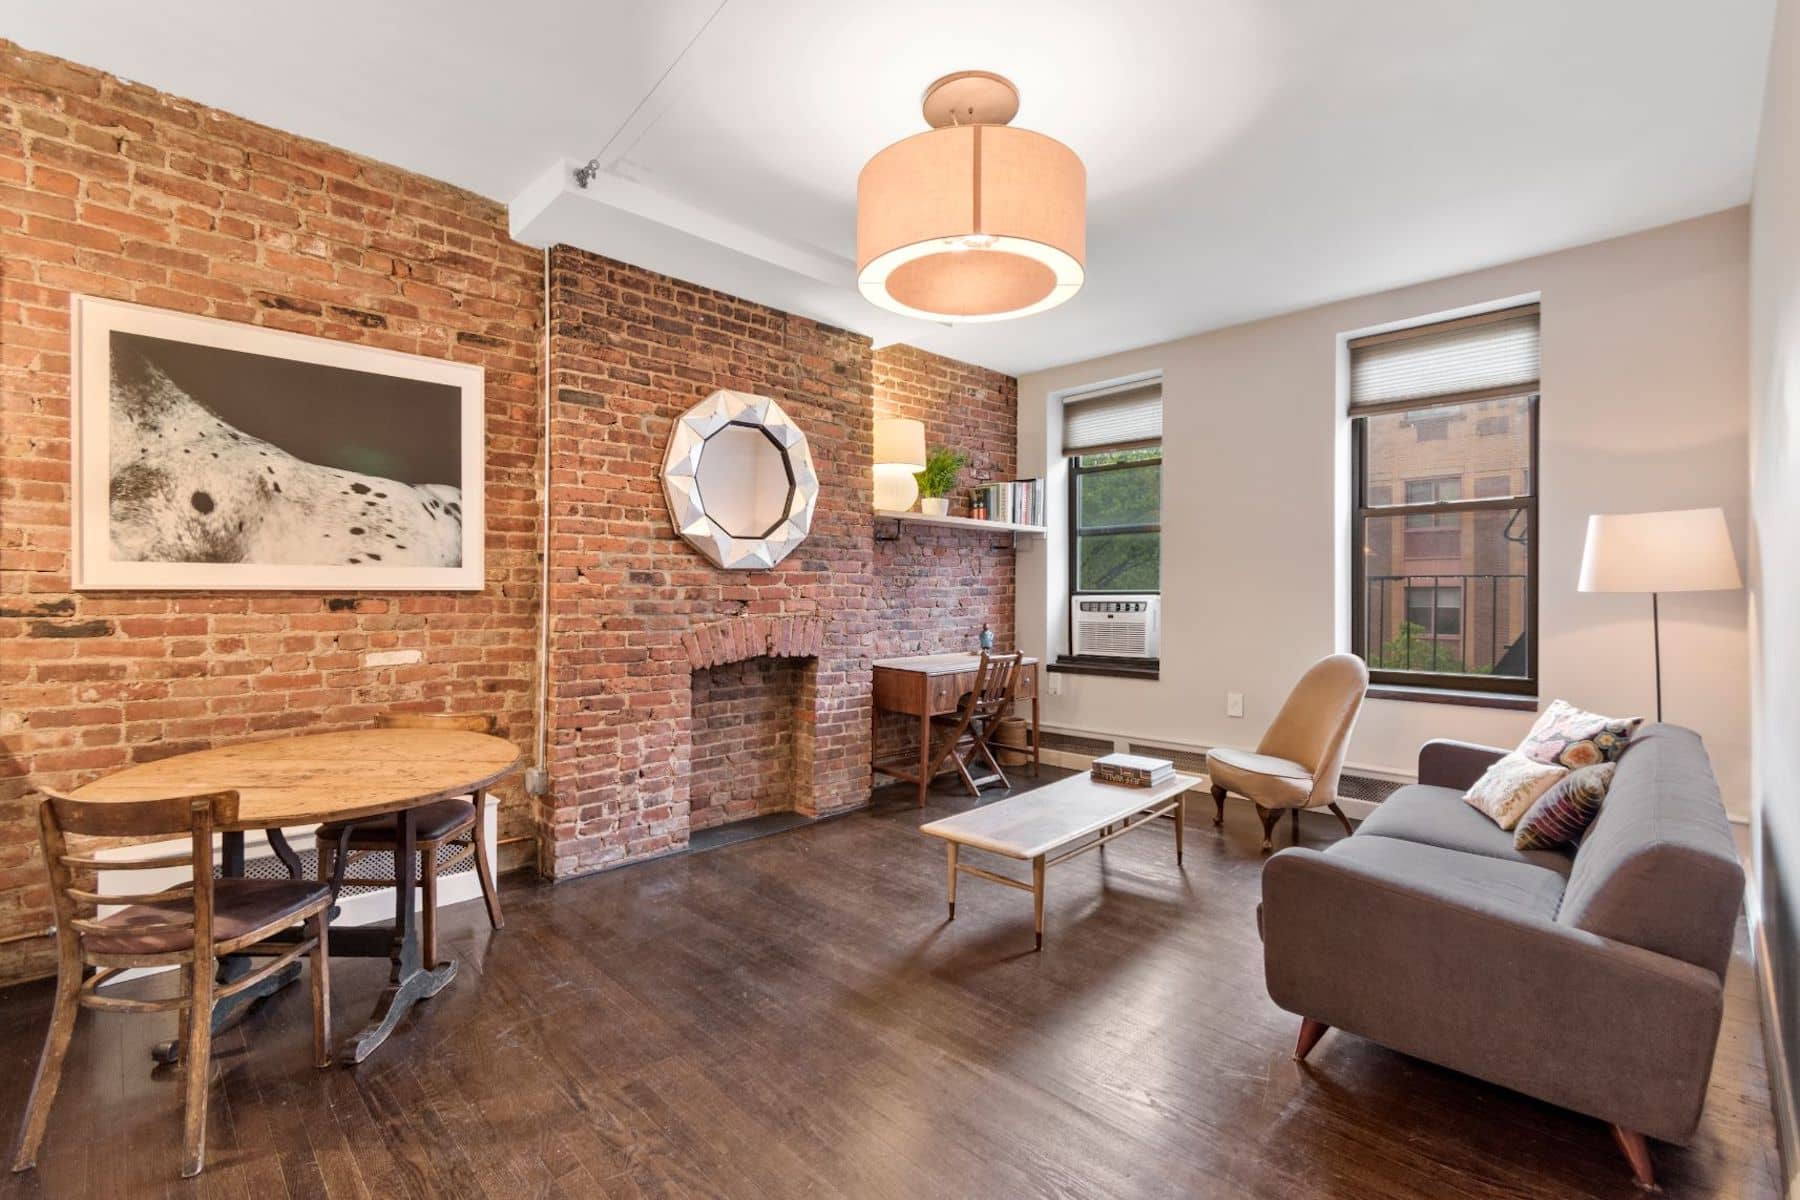 Real Estate Photography Best Lens - Jobs and Tips - Sunny 16